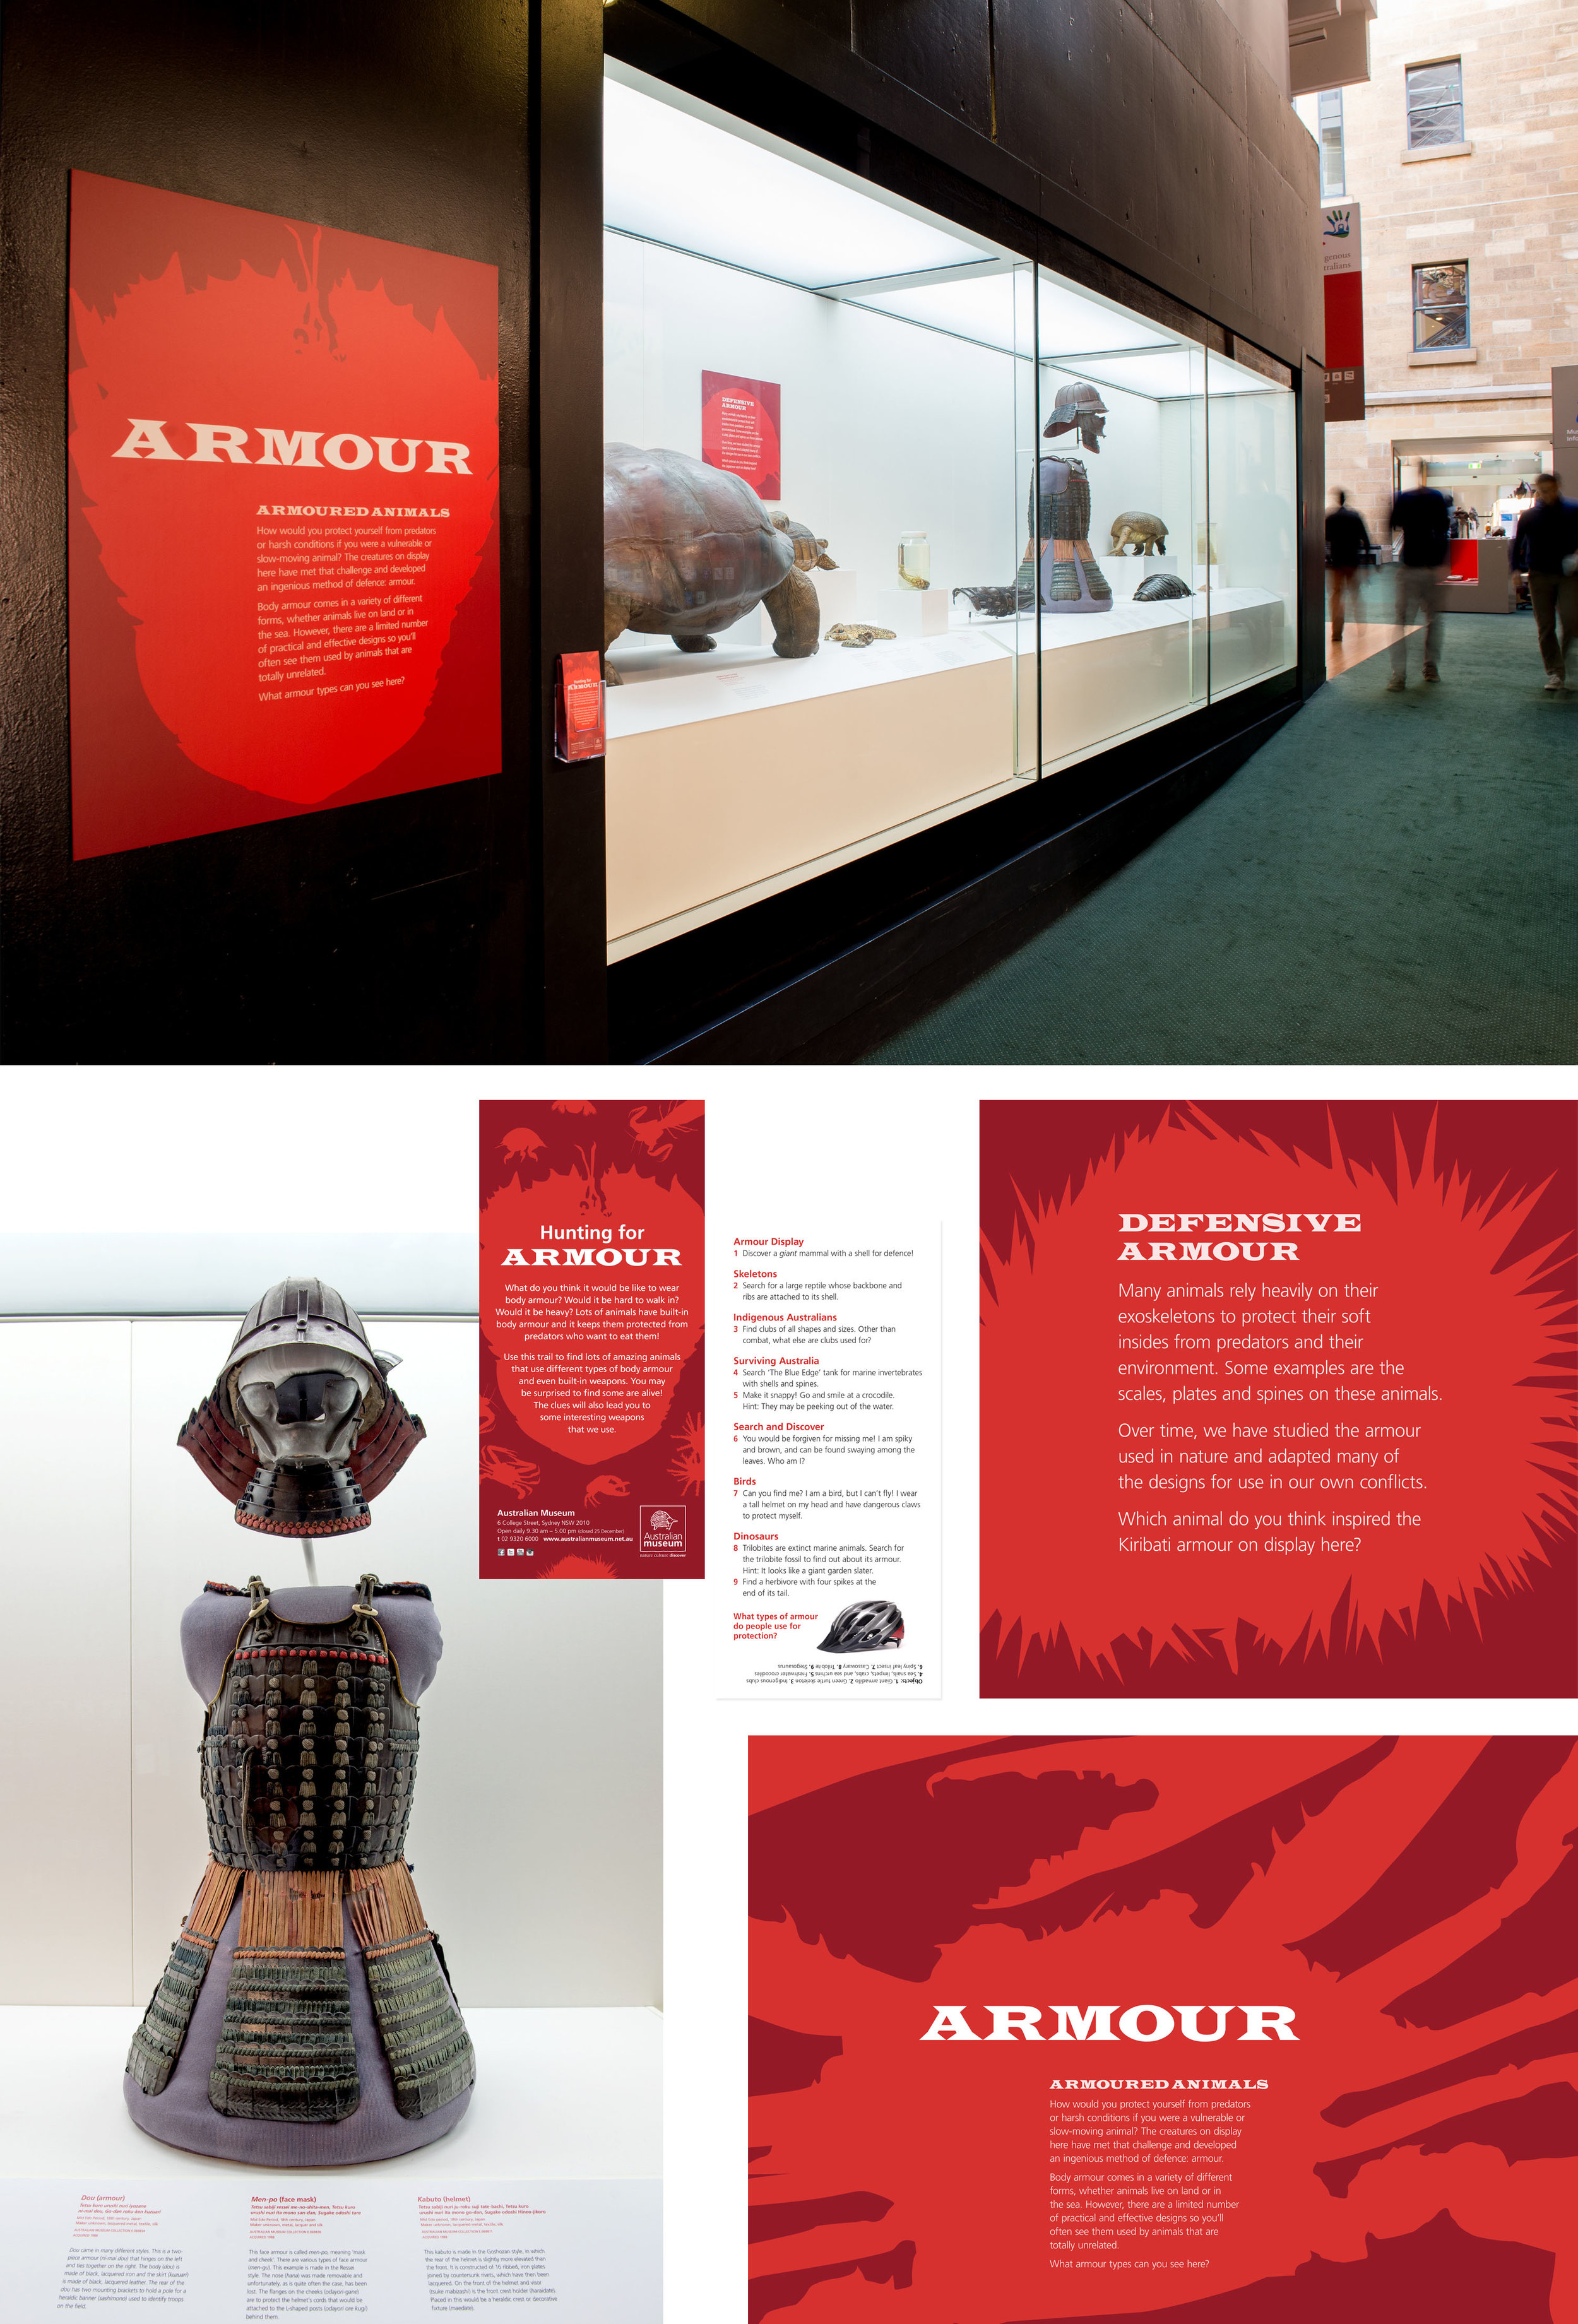 client  Australian Museum  project  Armour exhibition |hallway display and educational collateral